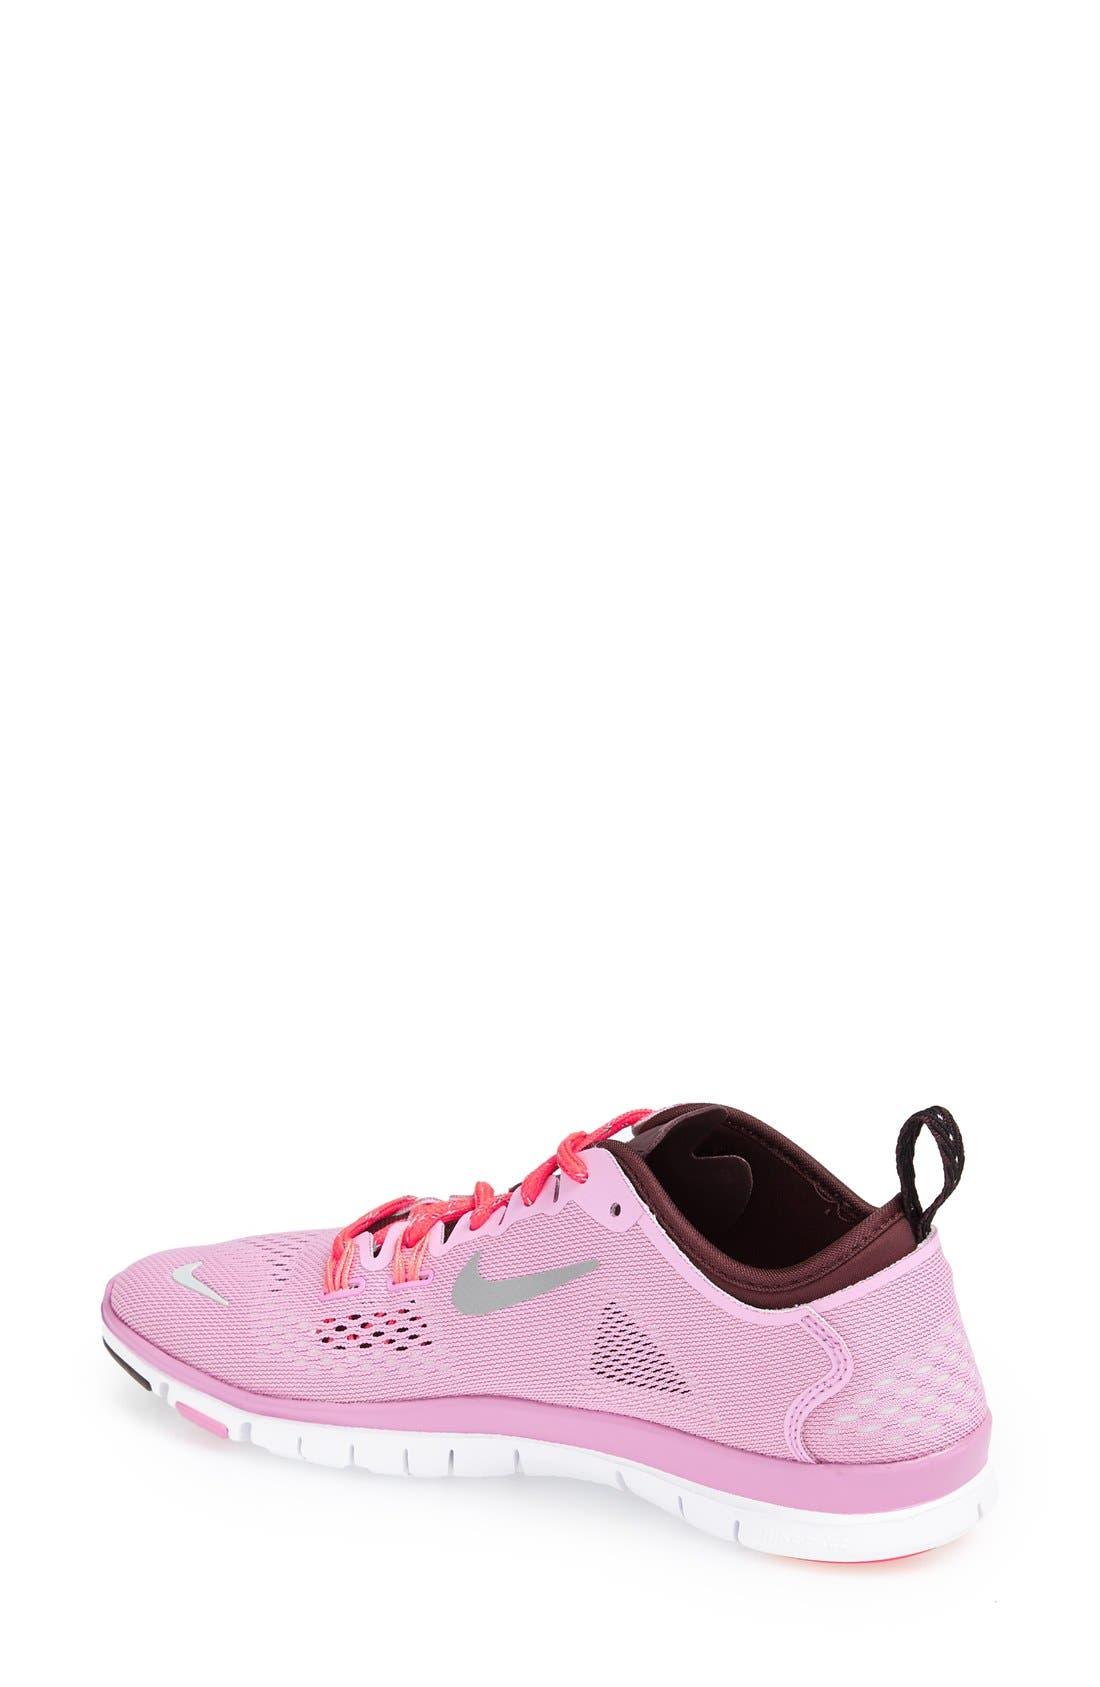 ,                             'Free 5.0 TR Fit 4' Training Shoe,                             Alternate thumbnail 80, color,                             659